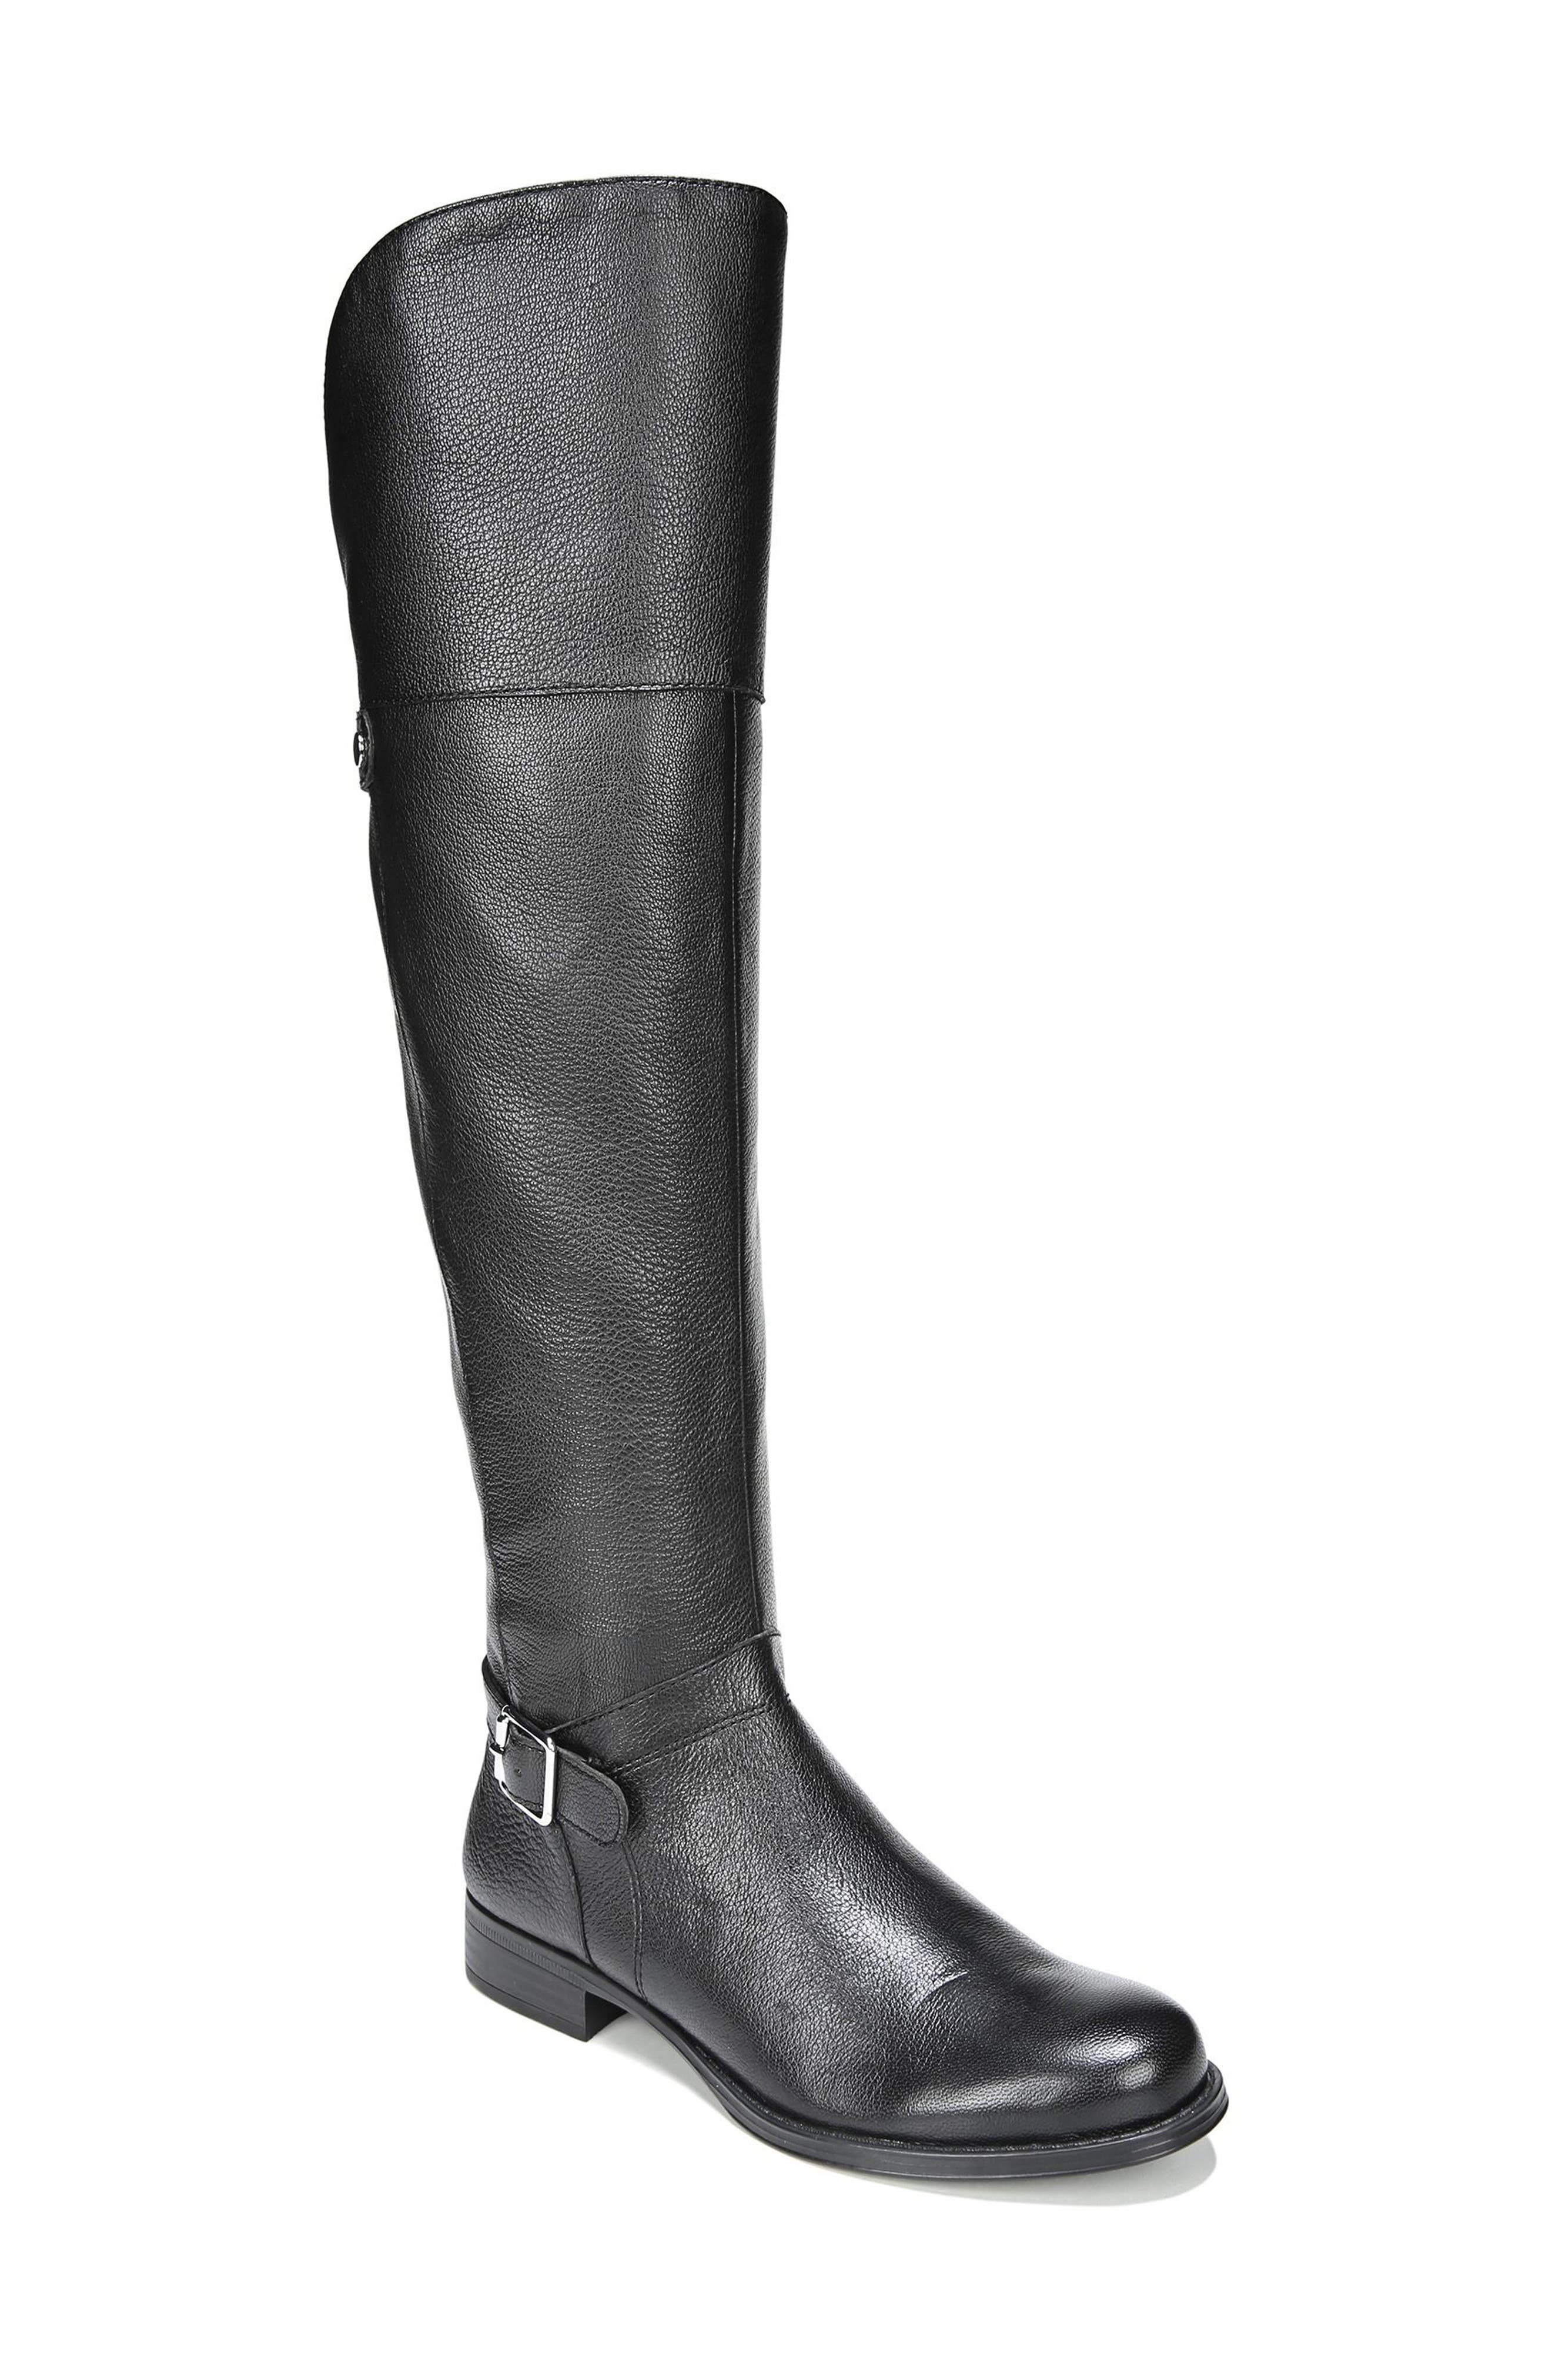 January Over the Knee High Boot,                             Main thumbnail 1, color,                             001